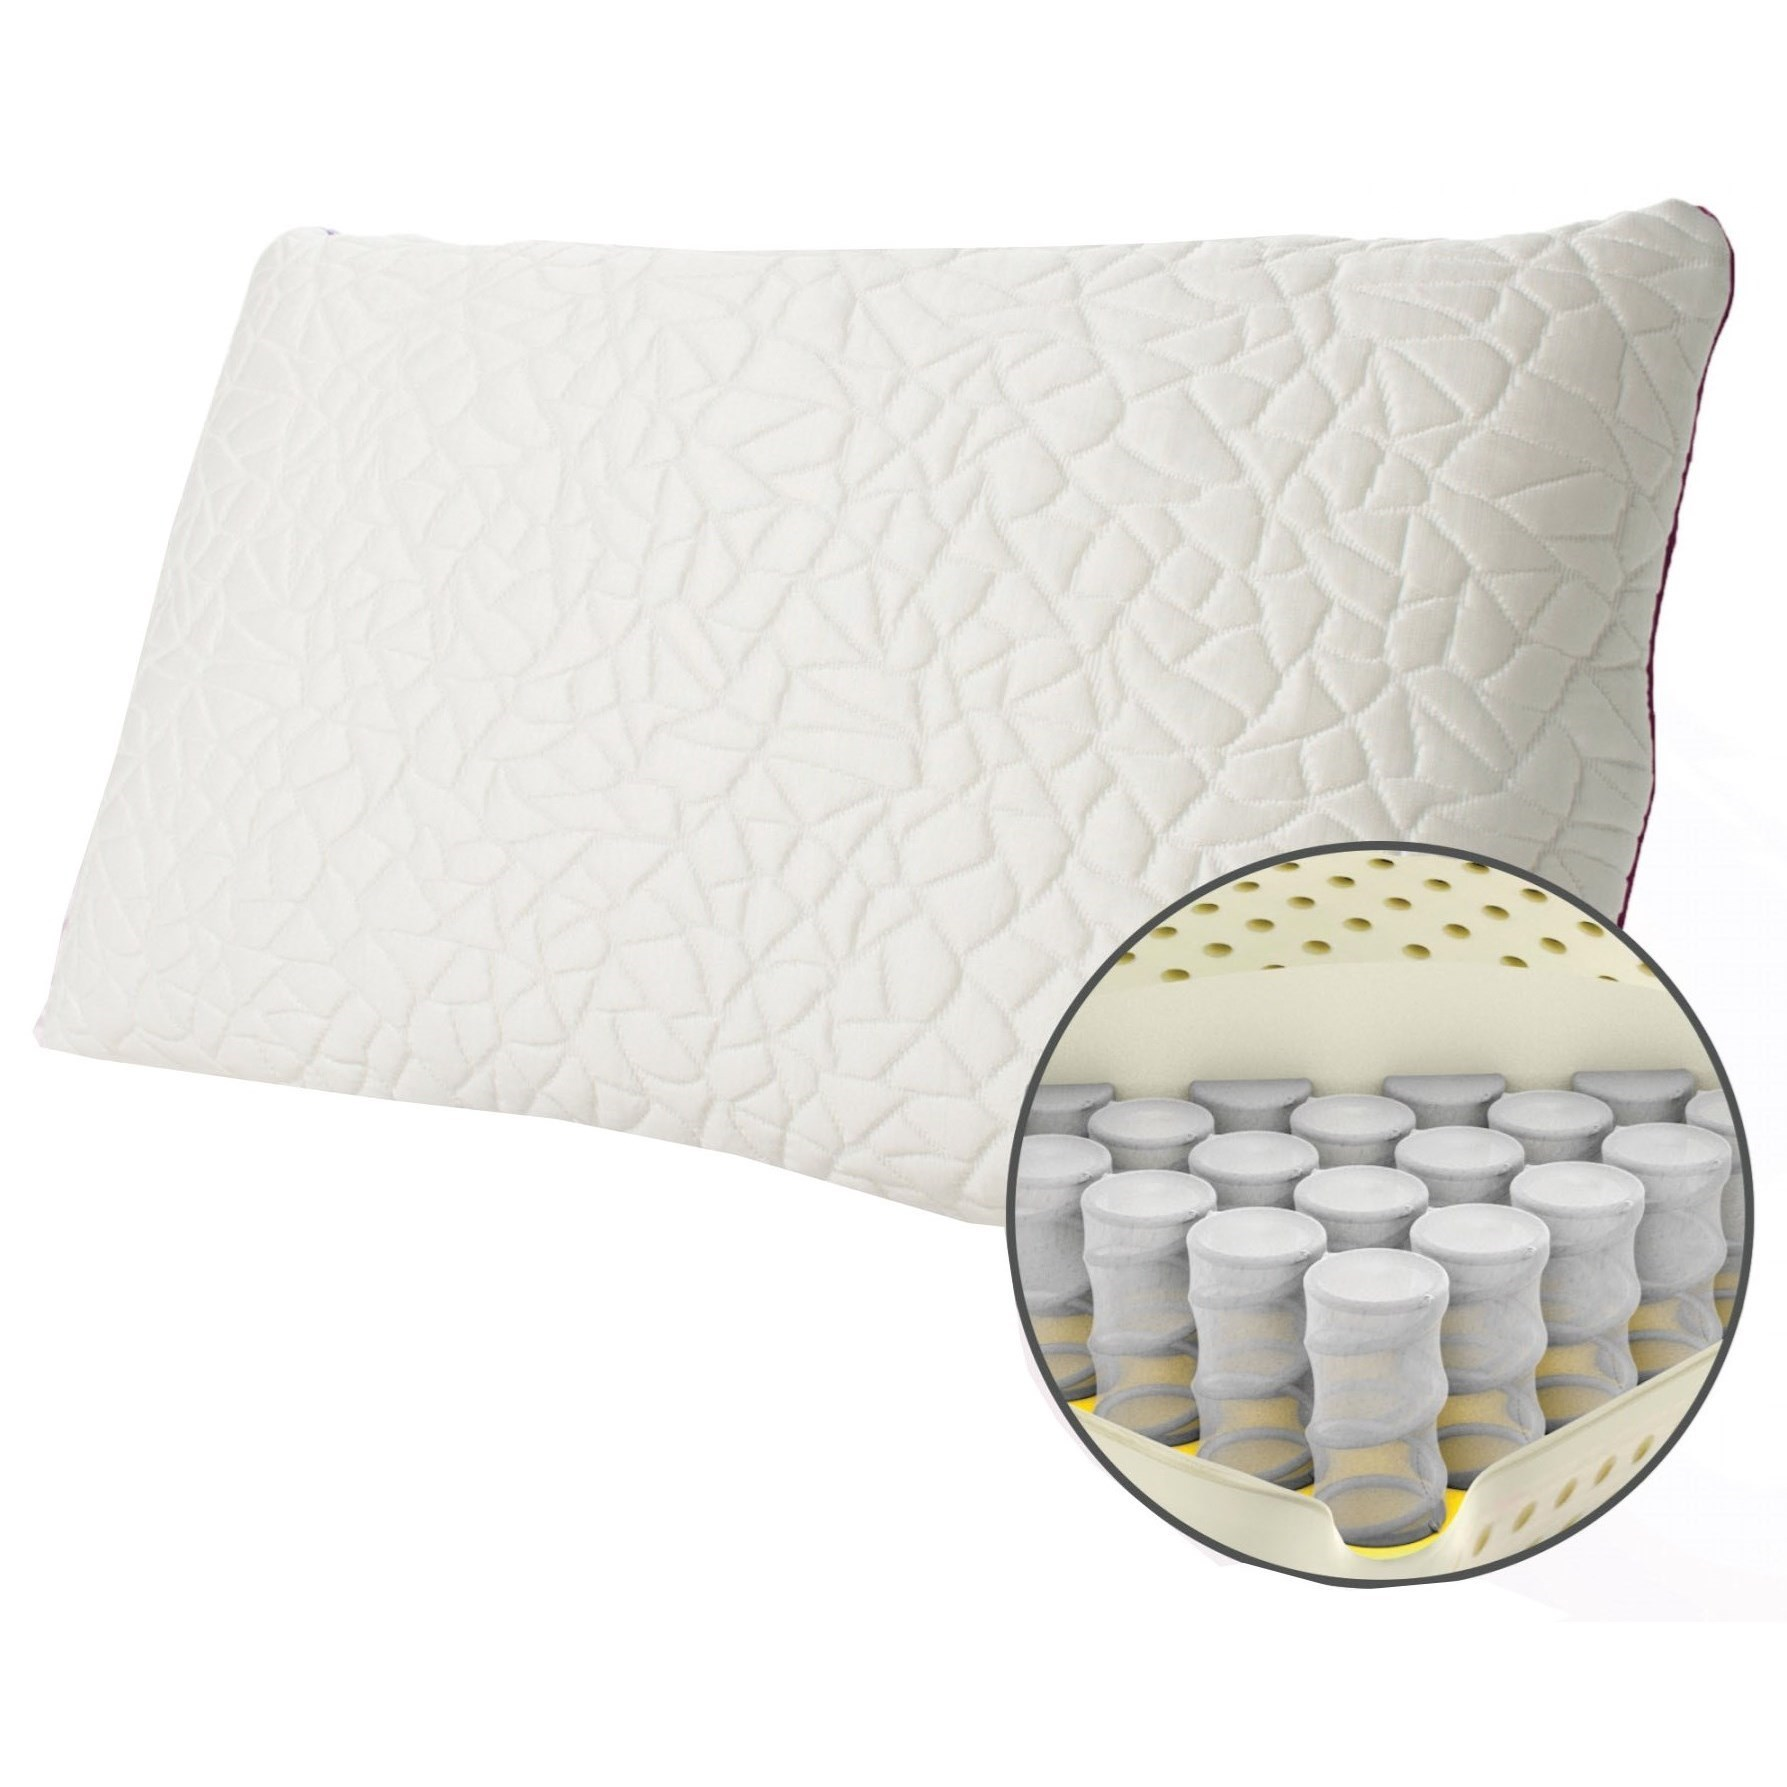 Firm Memory Foam Pillow Protect A Bed Snow Memory Foam Hybrid Pillow Queen Snow Memory